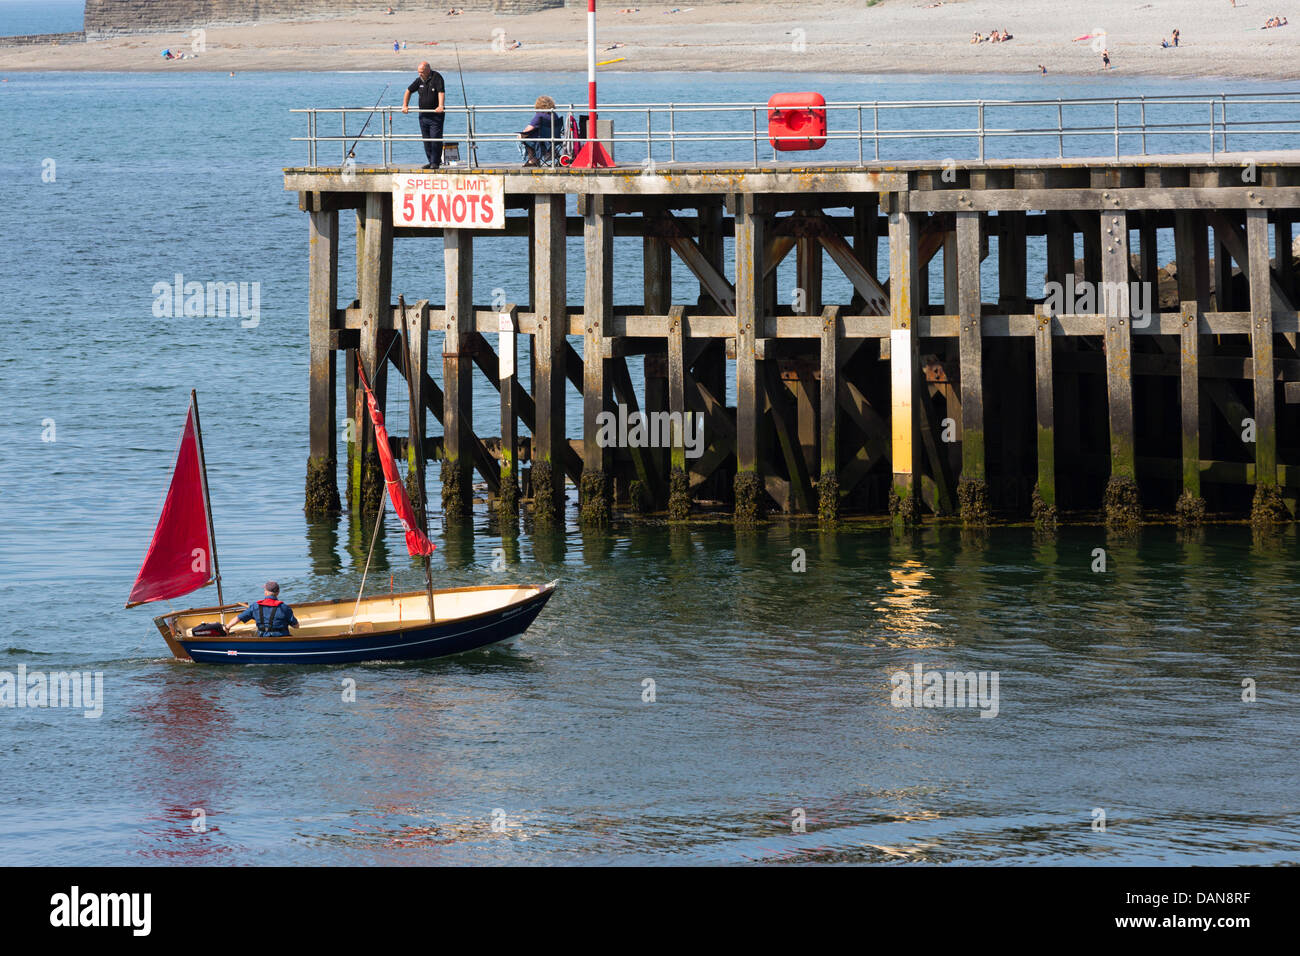 Aberystwyth, Wales, UK, 16 July 2013. Following the recent heatwave, a refreshing breeze sees the temperature drop - Stock Image